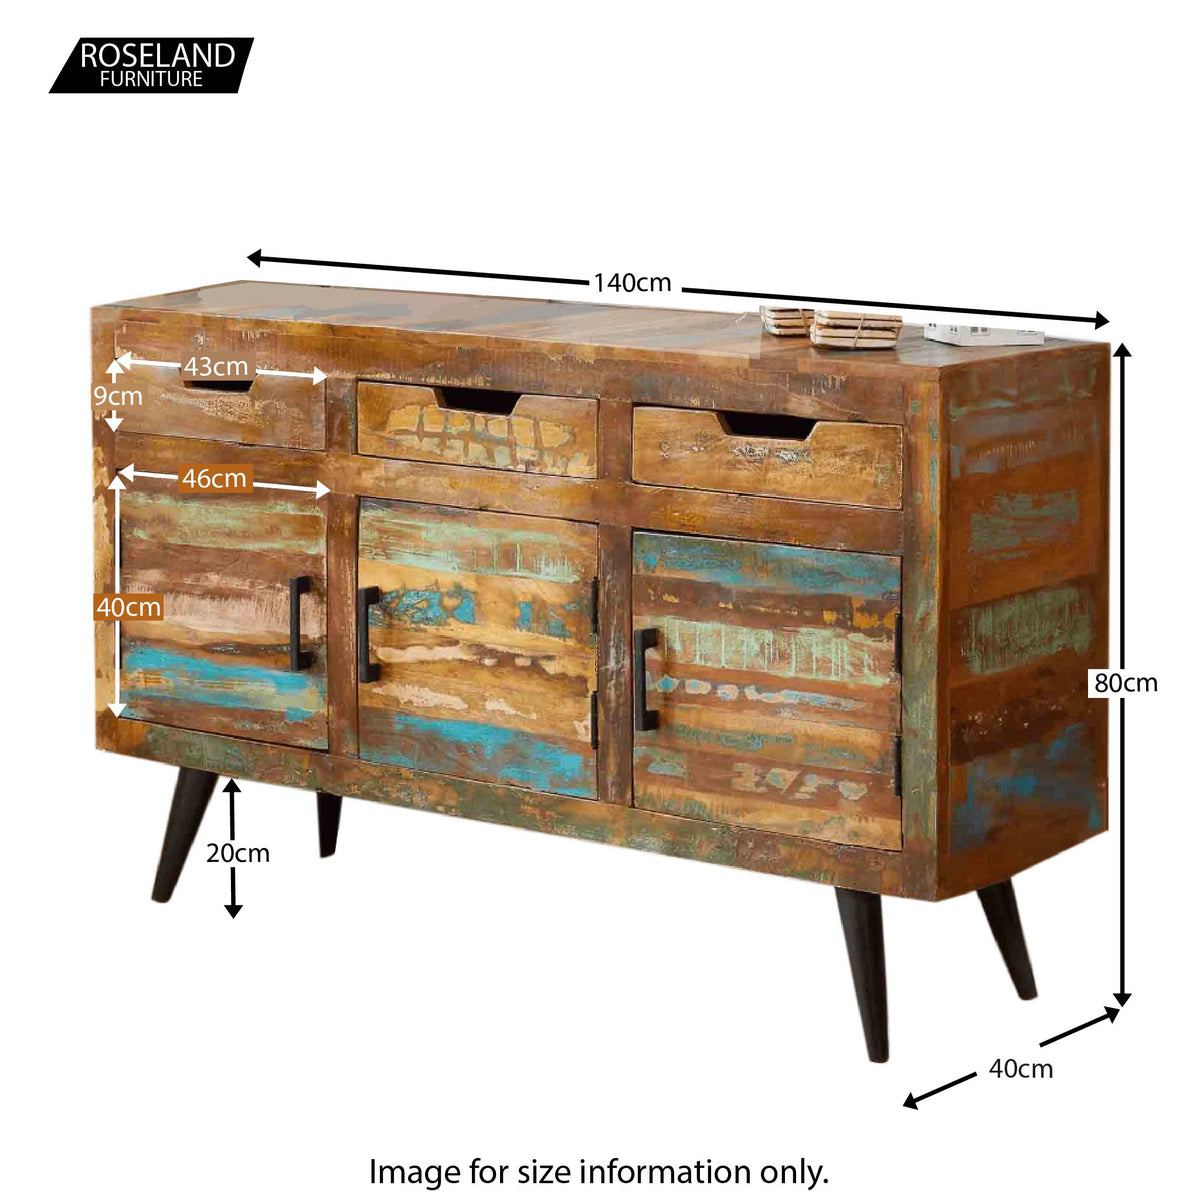 Coastal Chic Large Sideboard - Size Guide